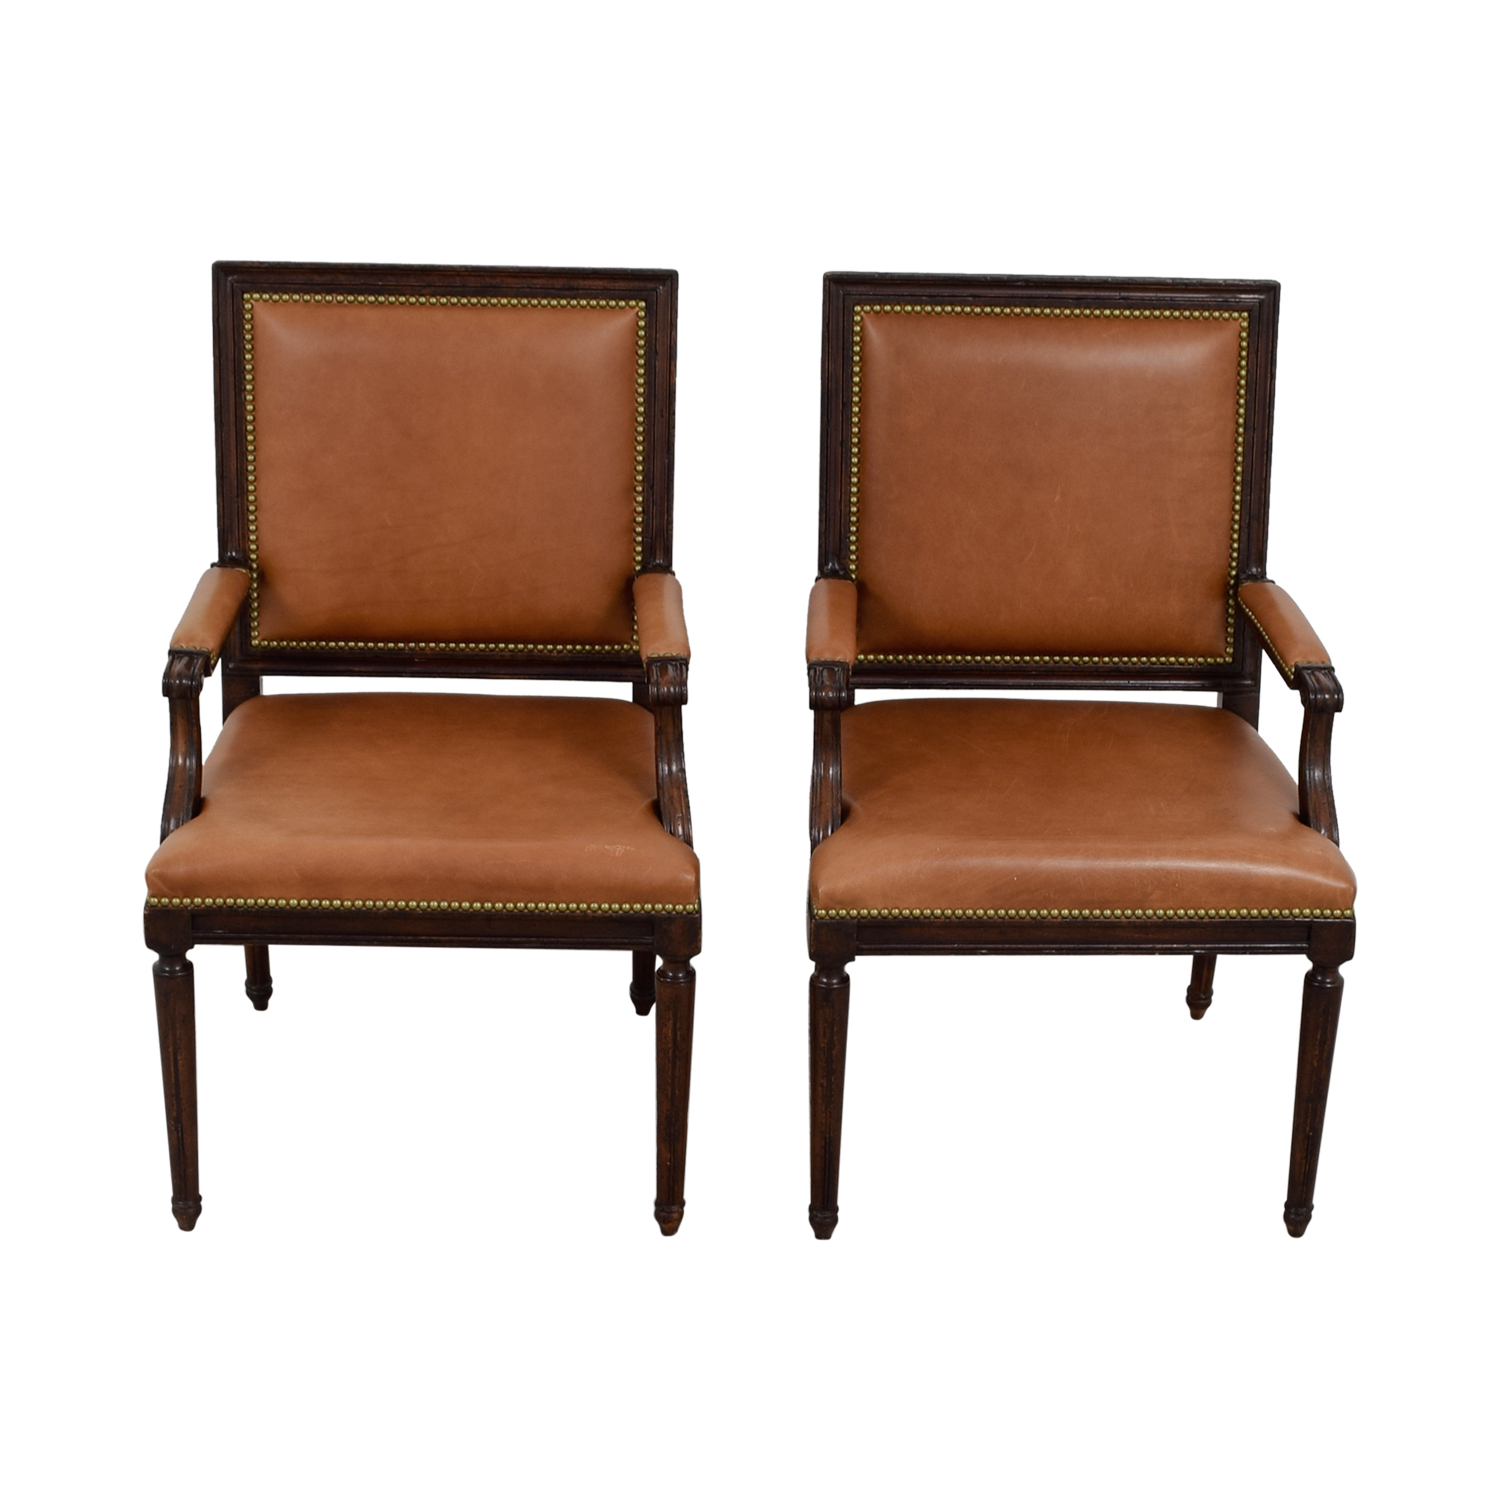 Henredon Brown Leather Nailhead Accent Chairs / Chairs